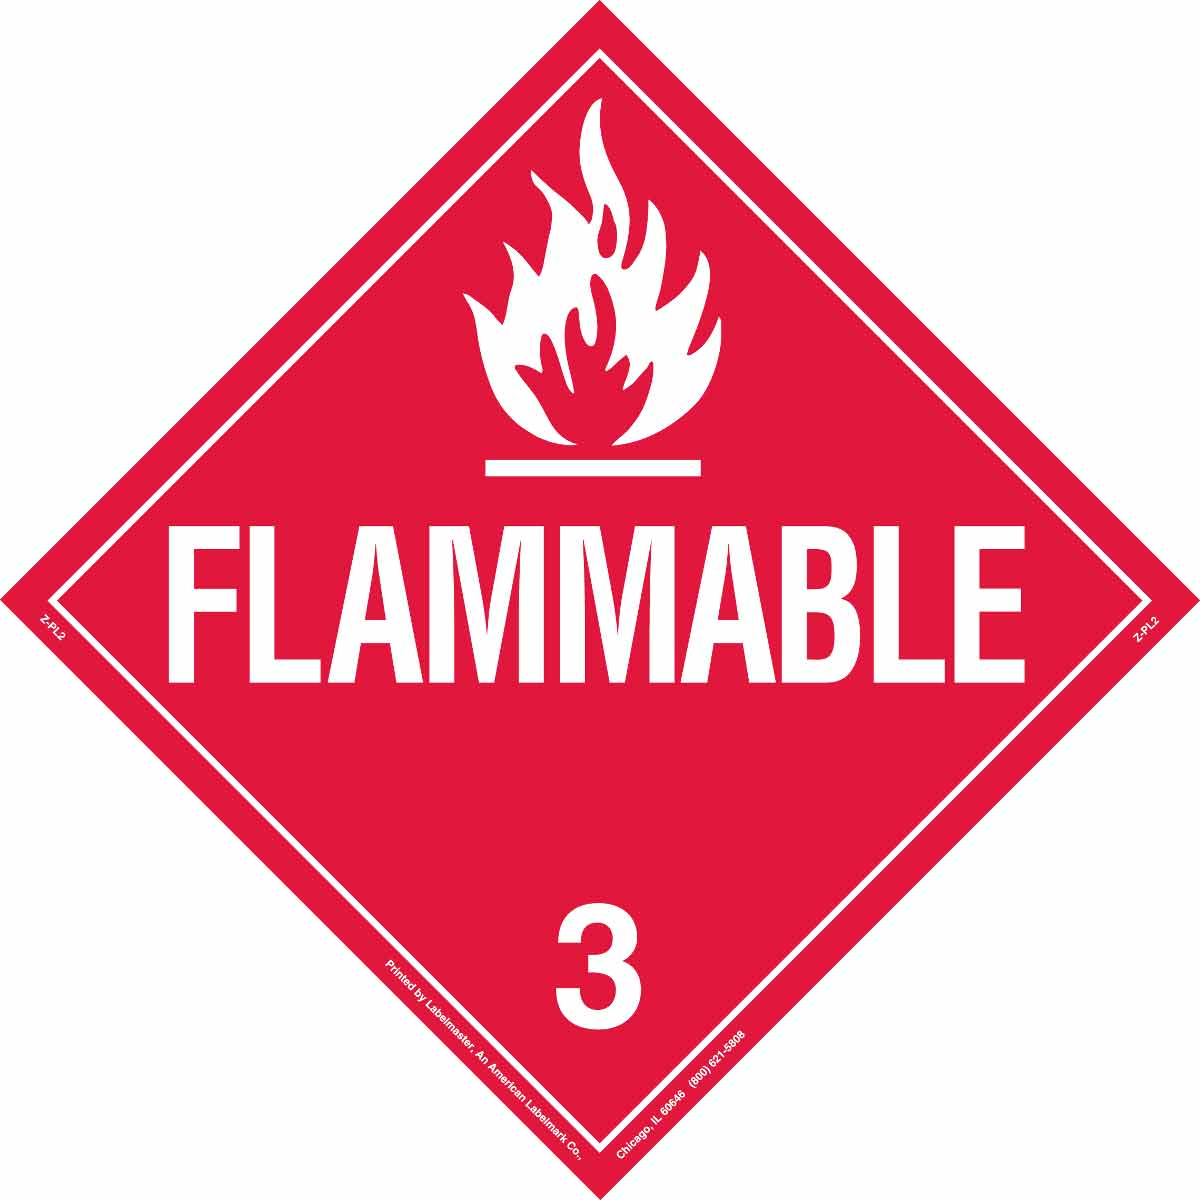 Brady® 63443 Diamond DOT Vehicle Placard, FLAMMABLE 3 Legend, Red/White, 10-3/4 in H, B-101 Polycoated Tagstock